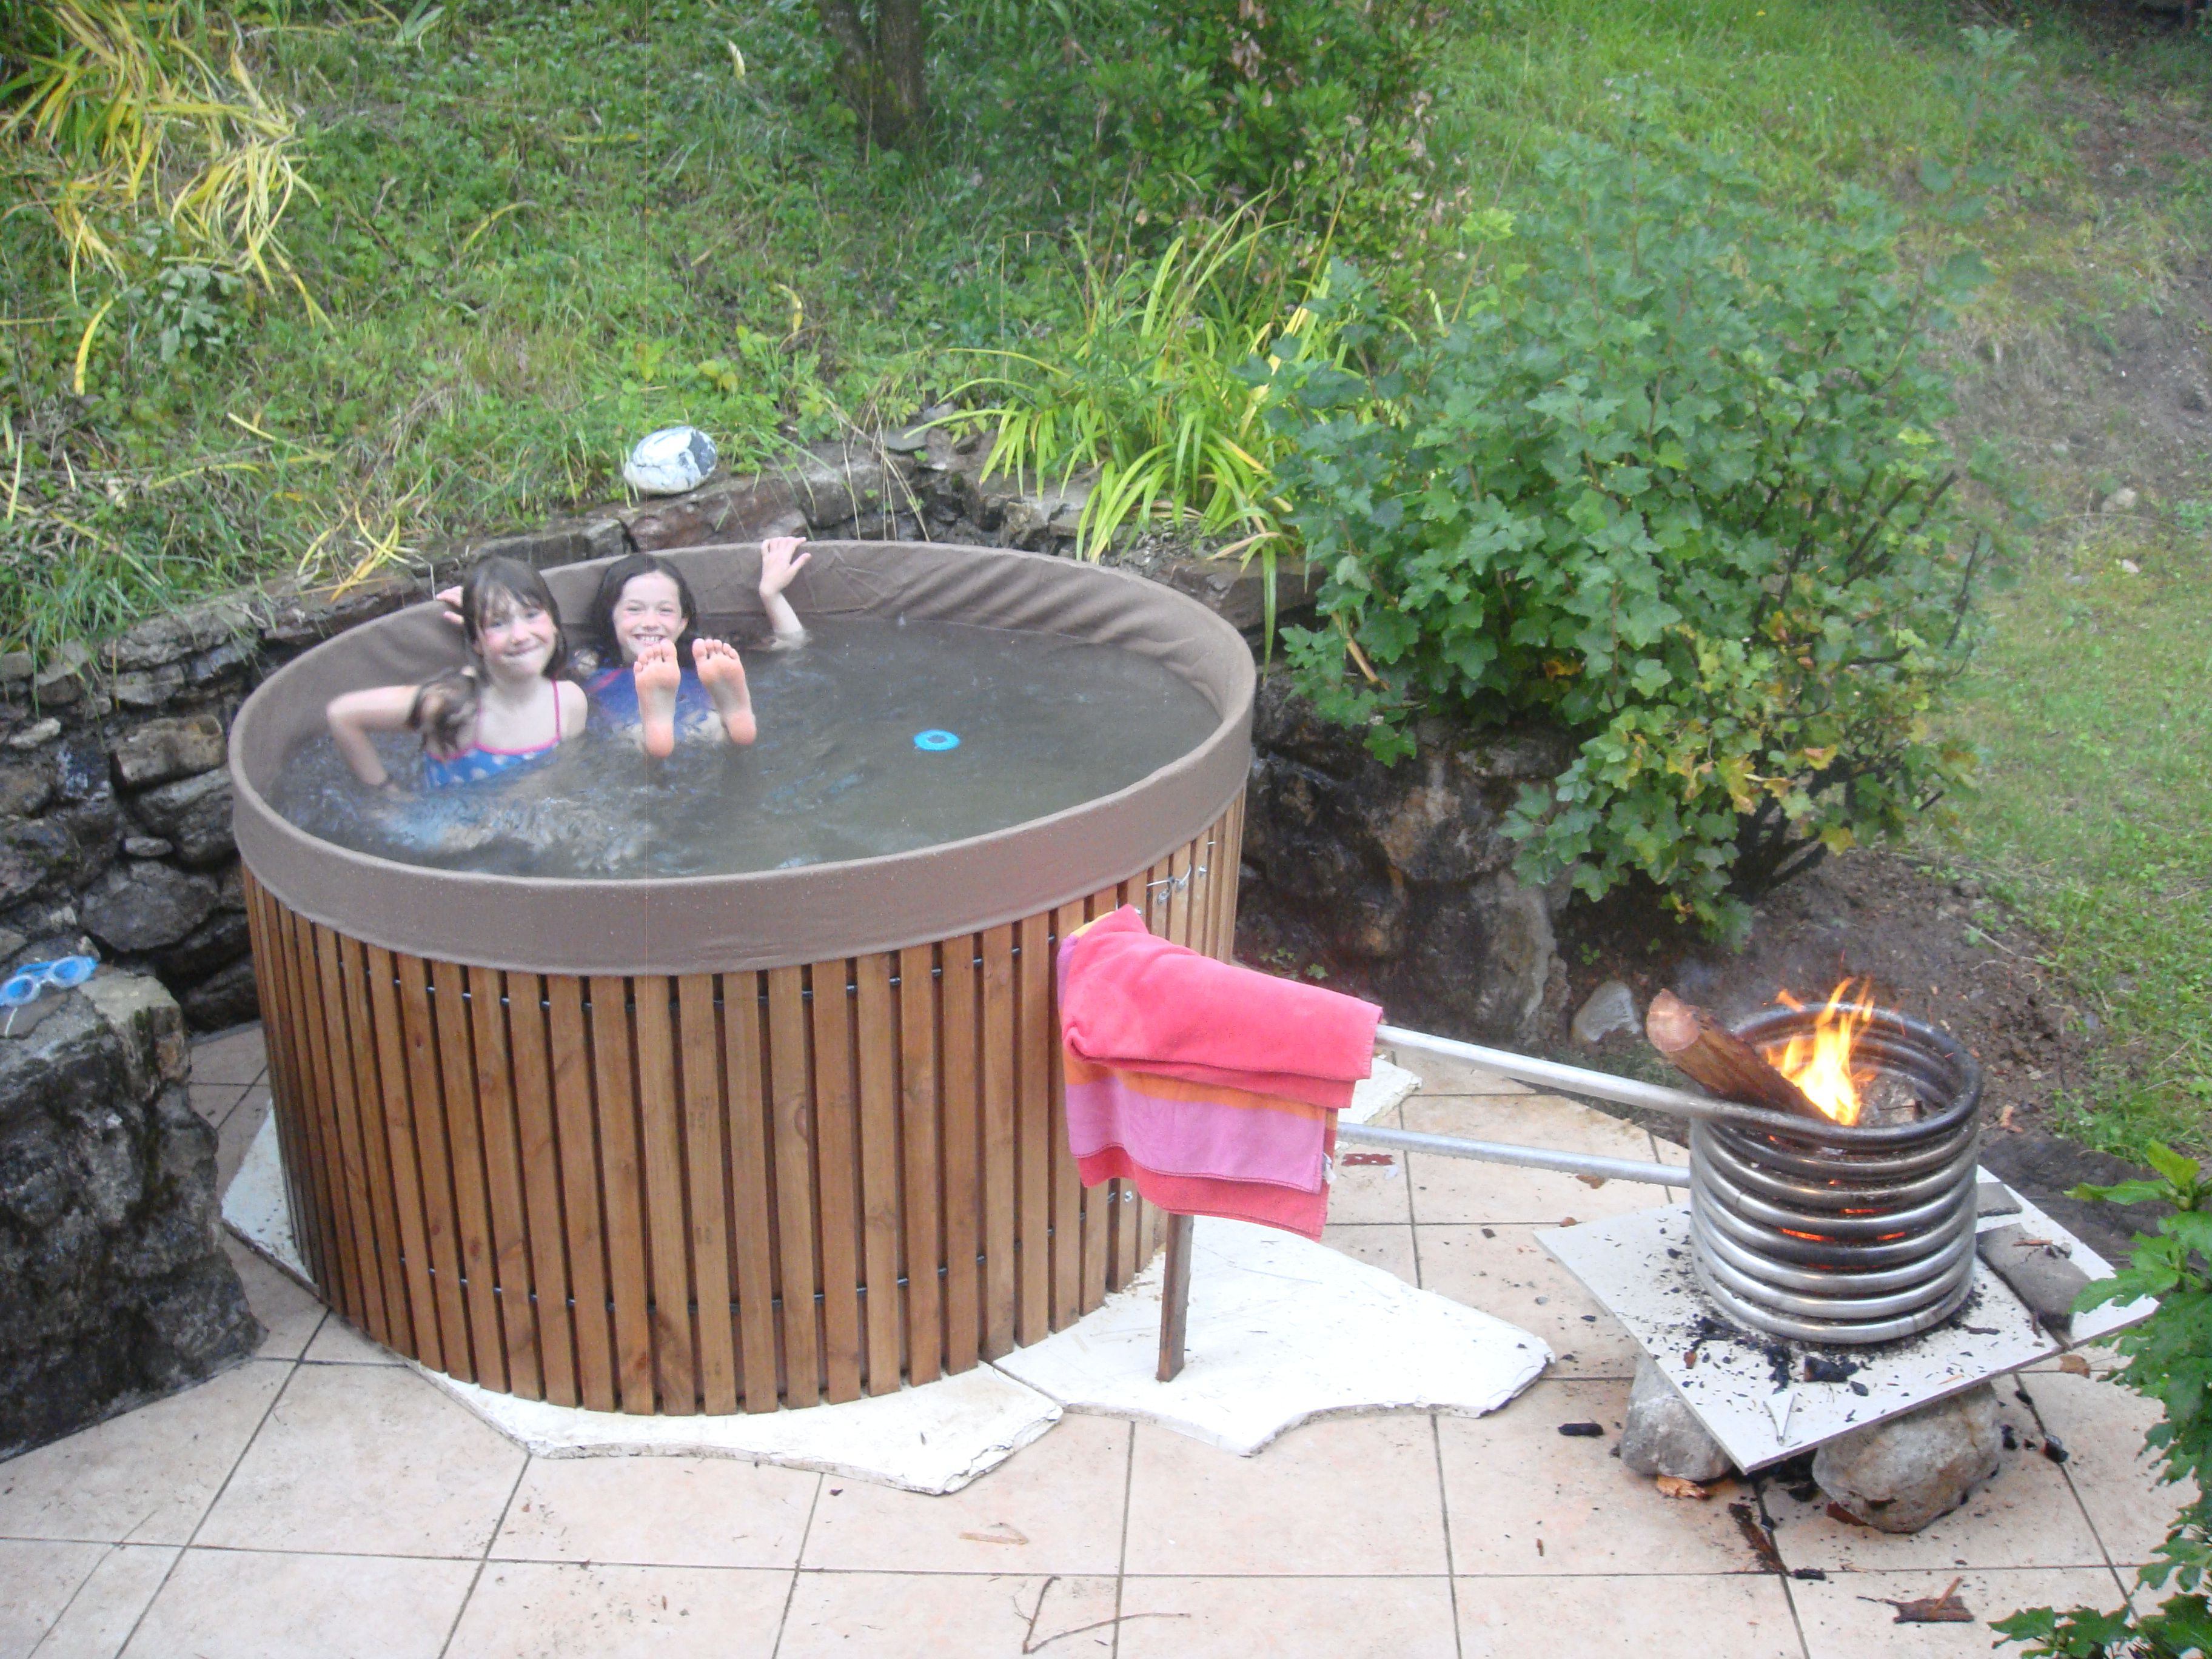 Diy hottub bath temp degrees in 4 hours just a wood fire inside pipe spiral hot water rises and draws in cooler water from below making thermal